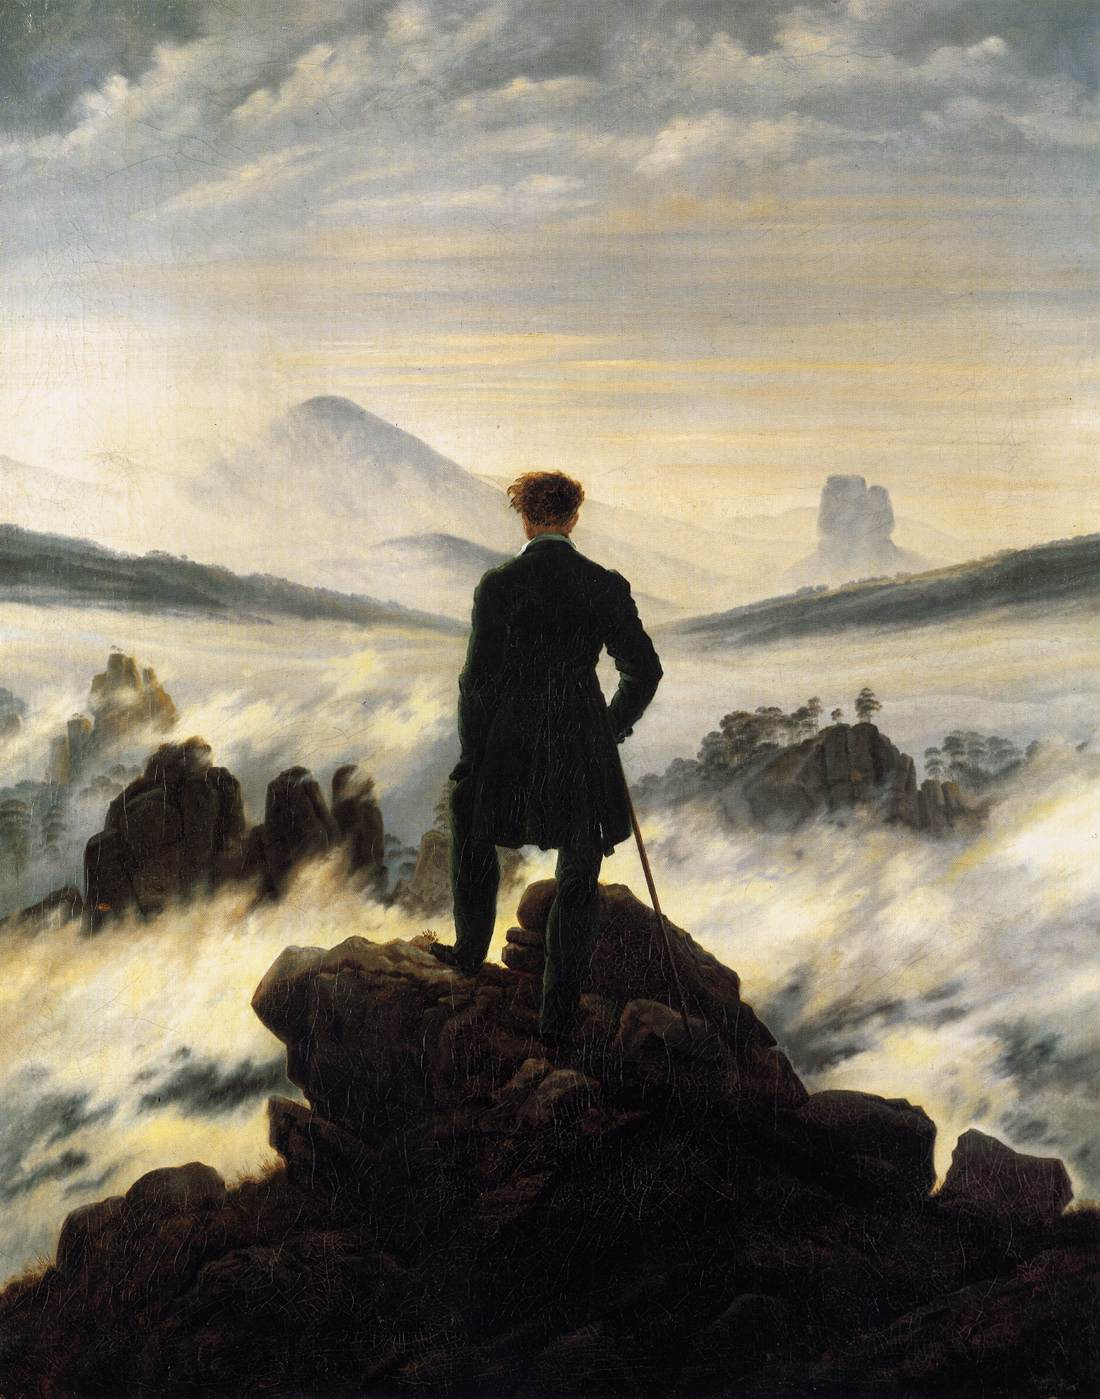 The Wanderer above the Mists